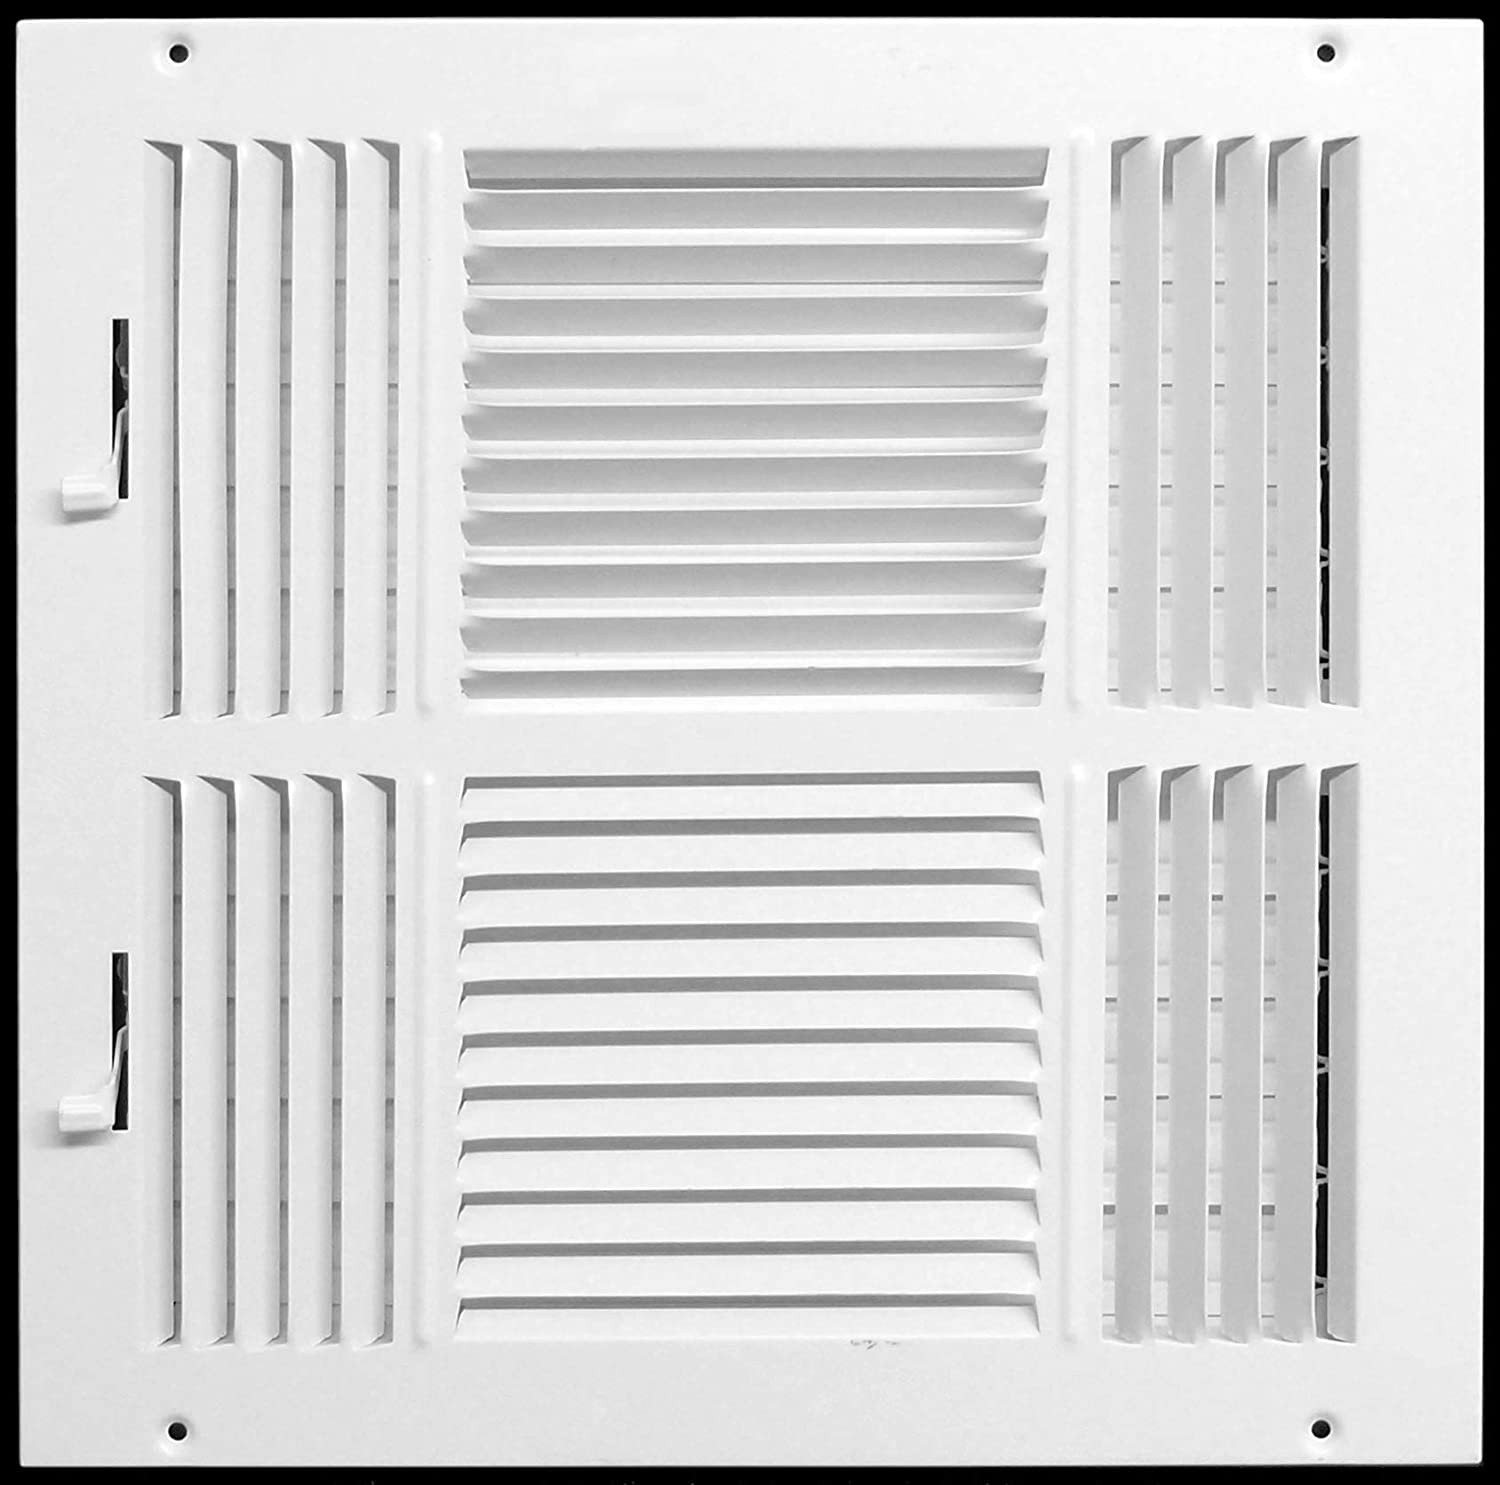 "14"" X 14"" 4-Way AIR Supply Grille - Vent Cover & Diffuser - Flat Stamped Face - White [Outer Dimensions: 15.75""w X 15.75""h]"